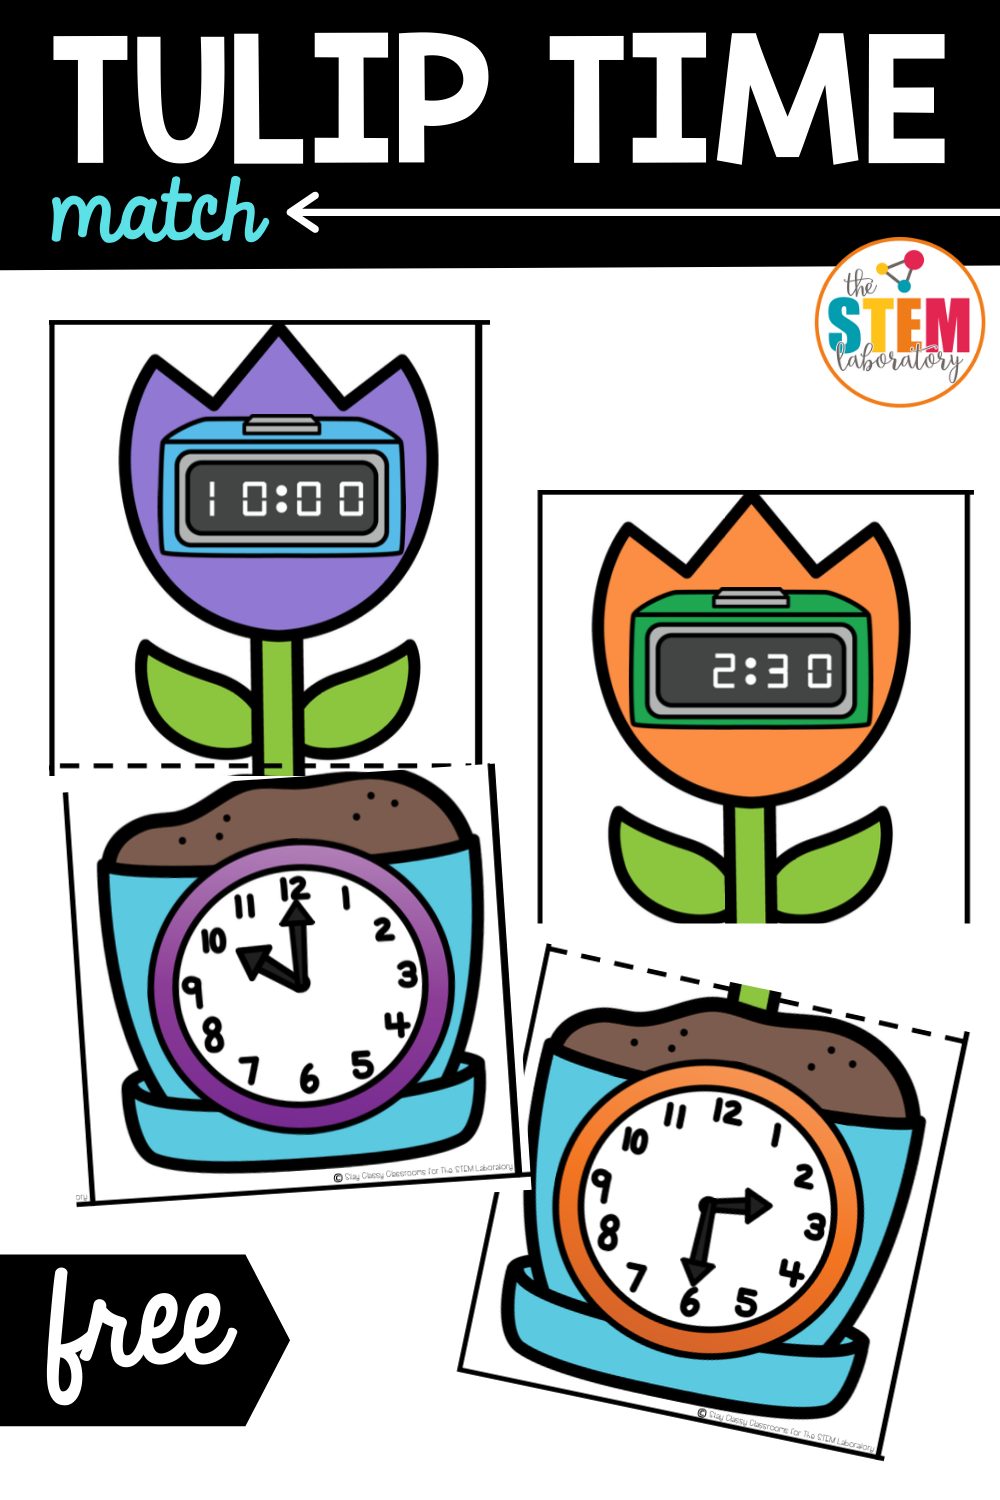 Telling Time Activity – Tulip Time Match